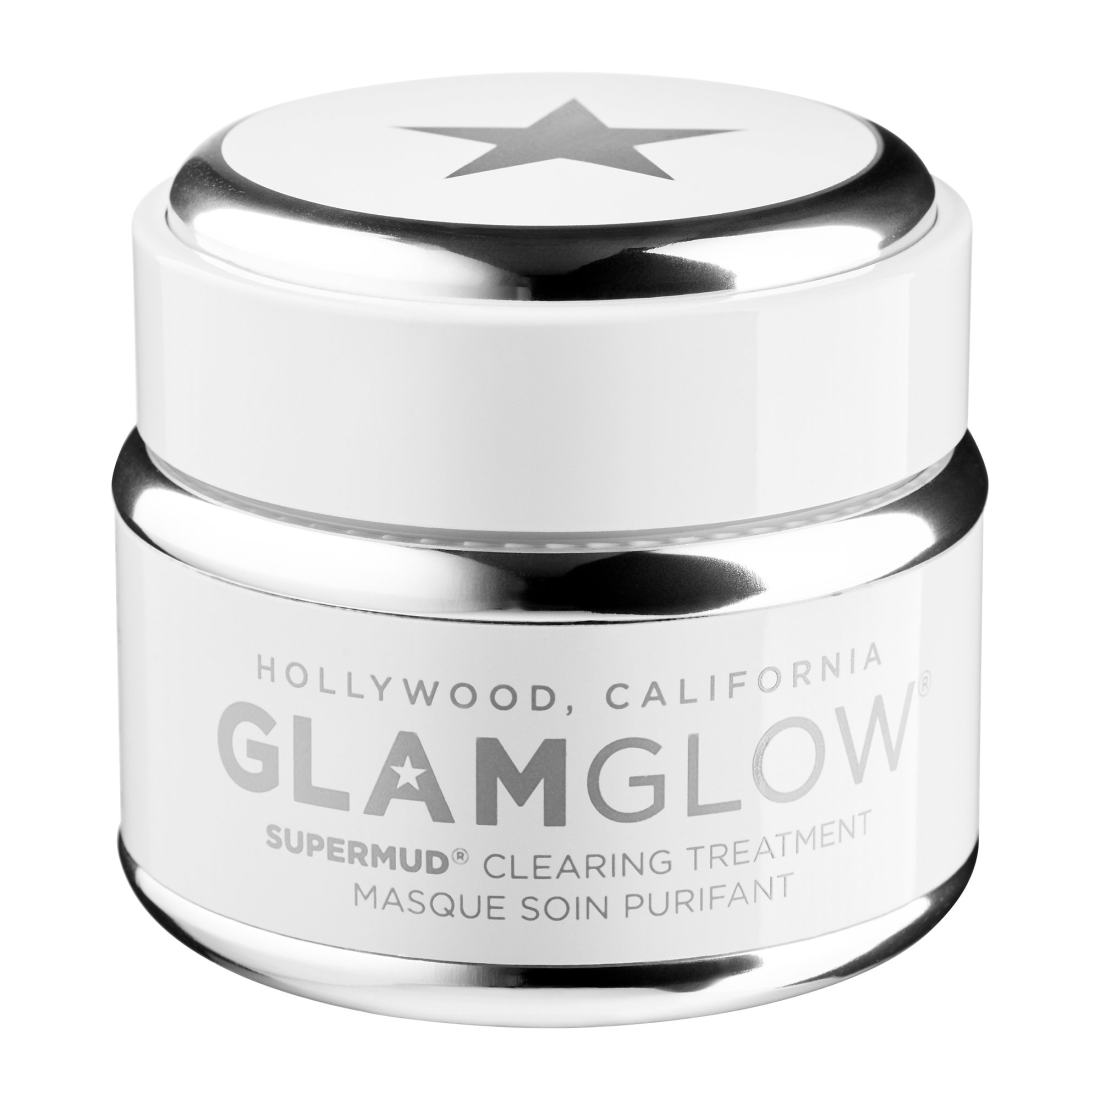 GLAMGLOW - SUPERMUD® Activated Charcoal Treatment Mask 1.7 oz/ 50 g